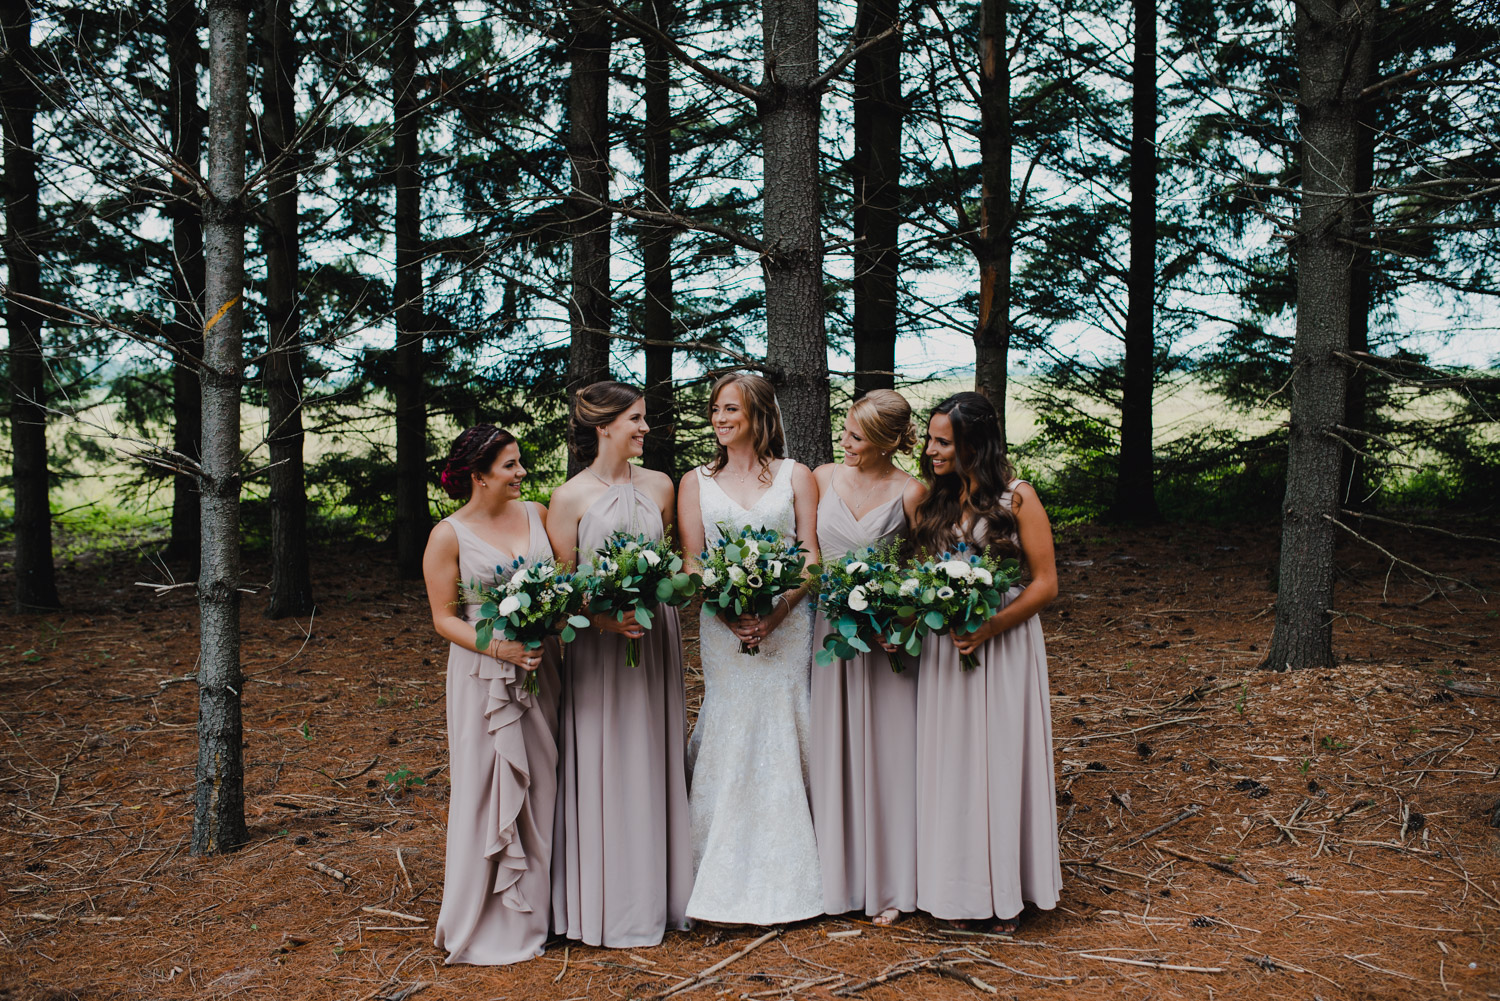 Bridesmaids laughing together and standing with their flowers